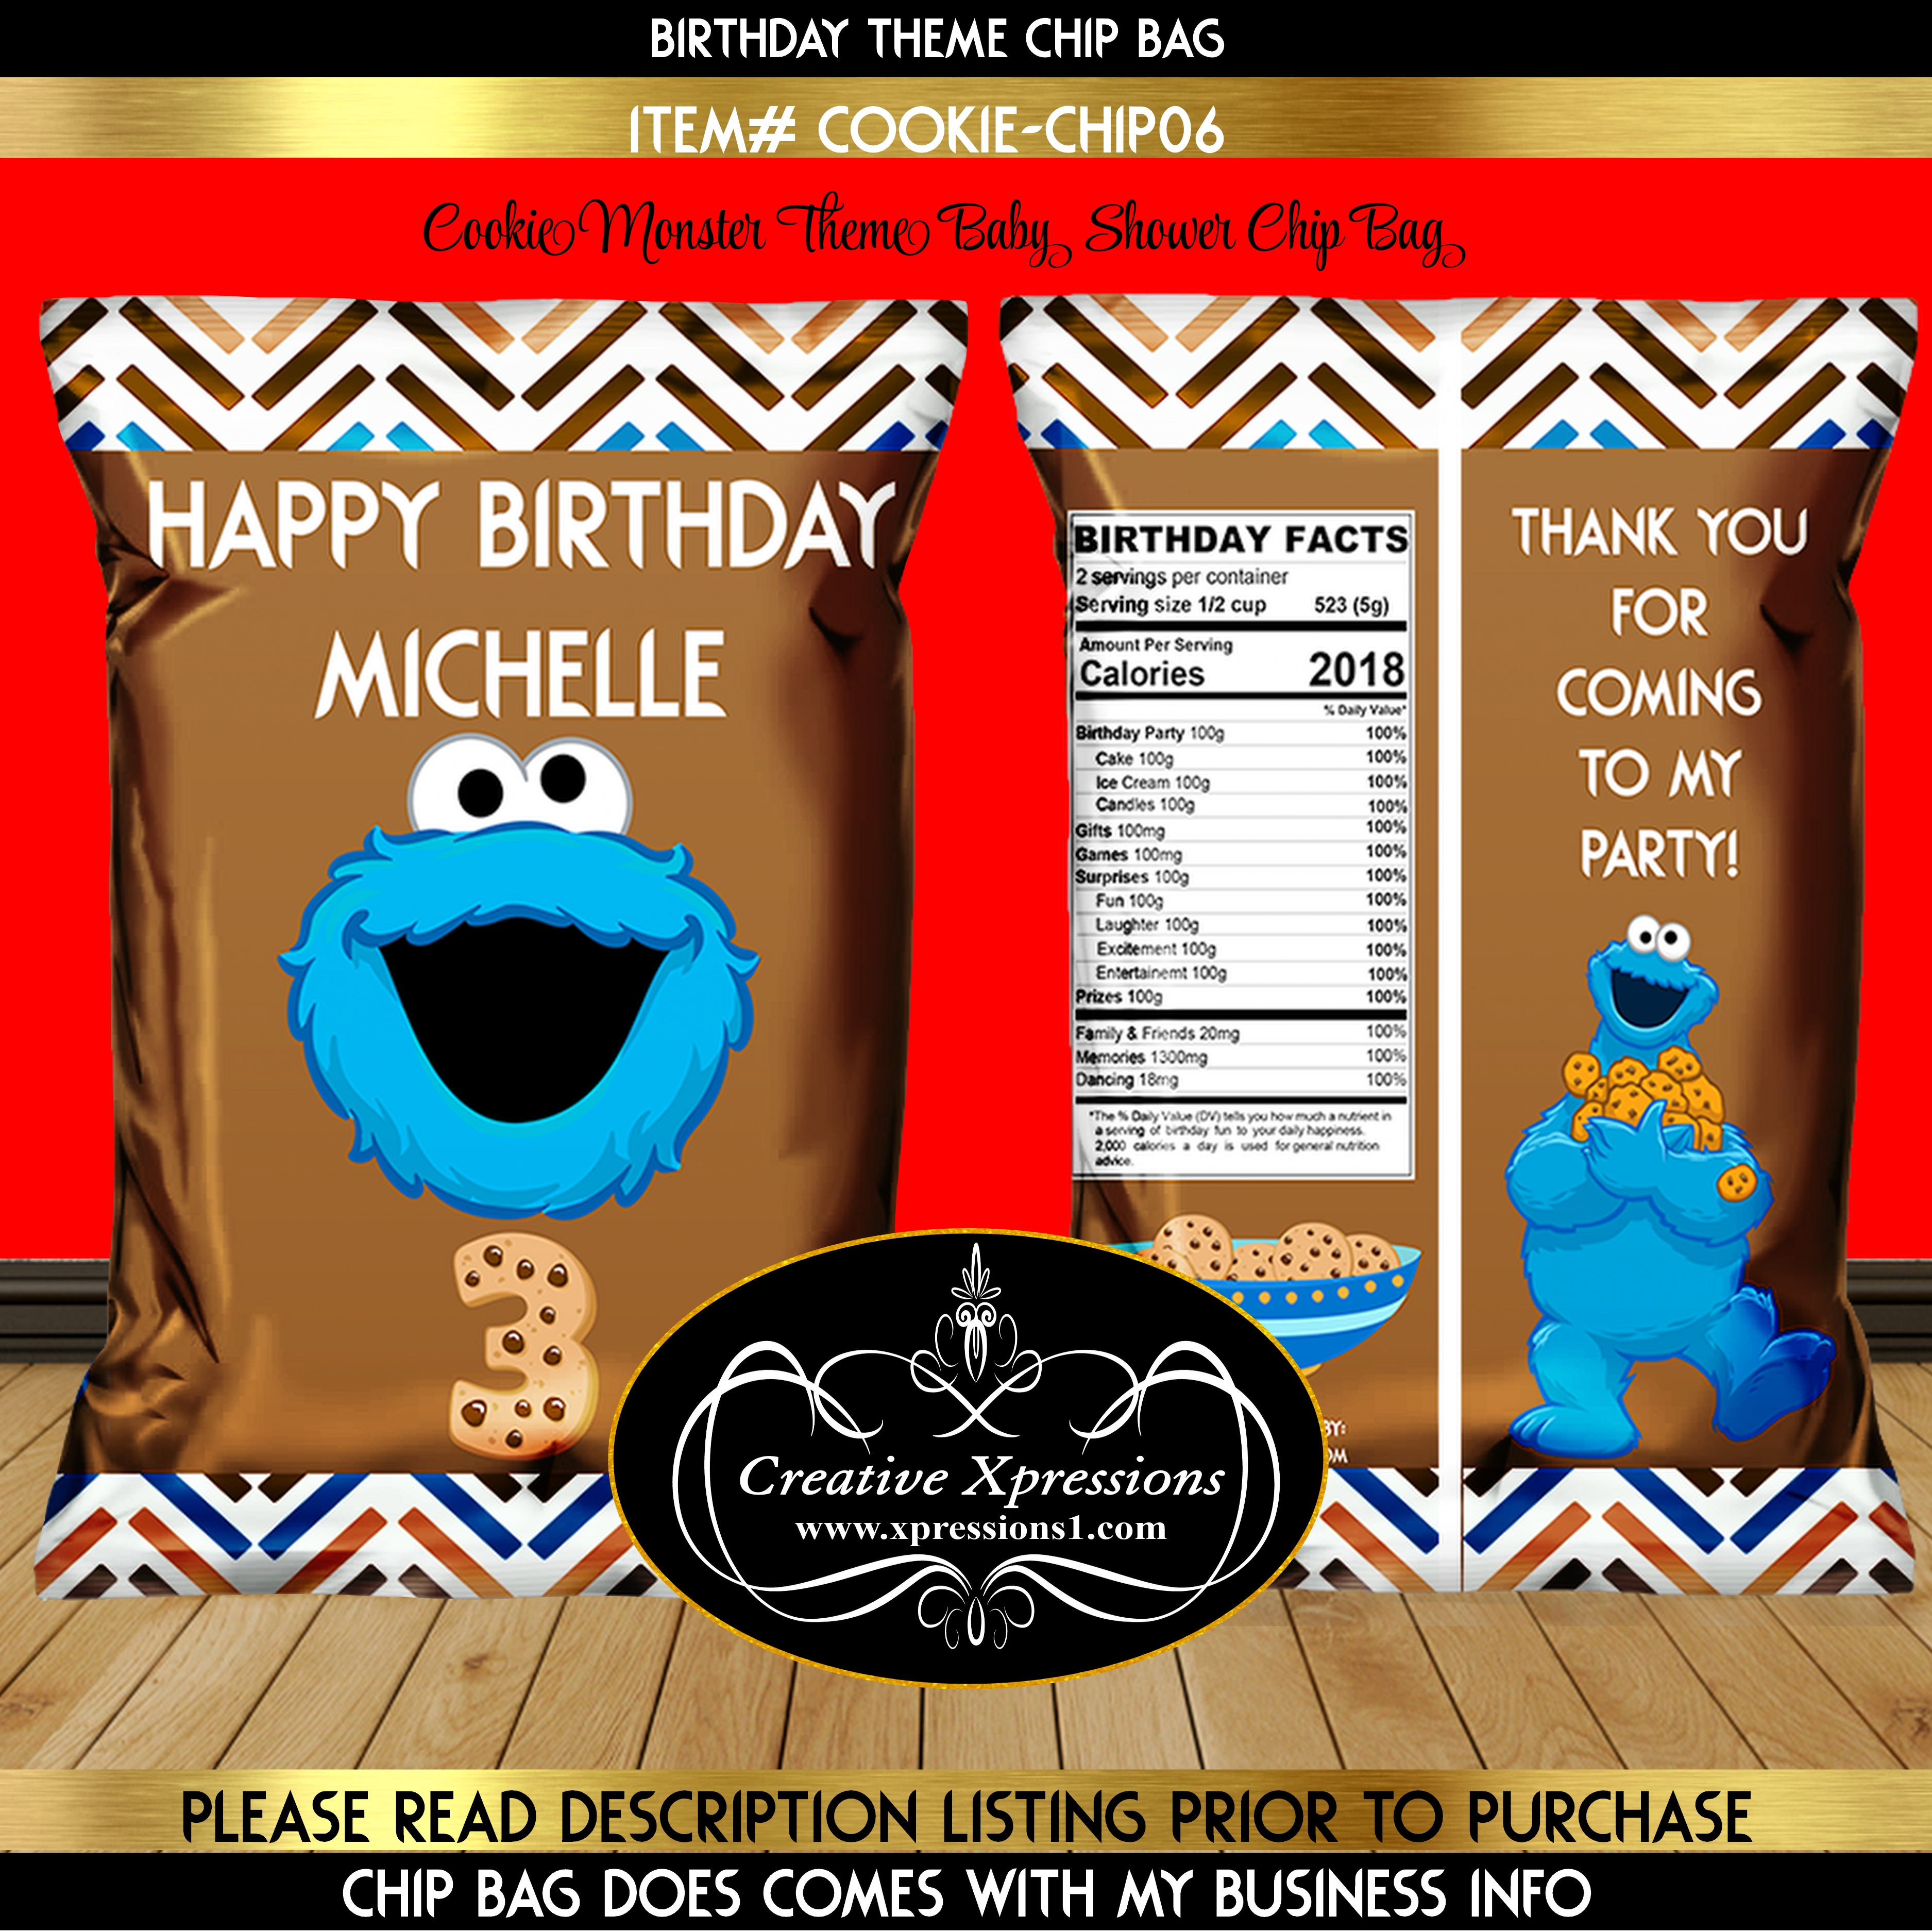 Cookie Monster on Brown Chip Bag